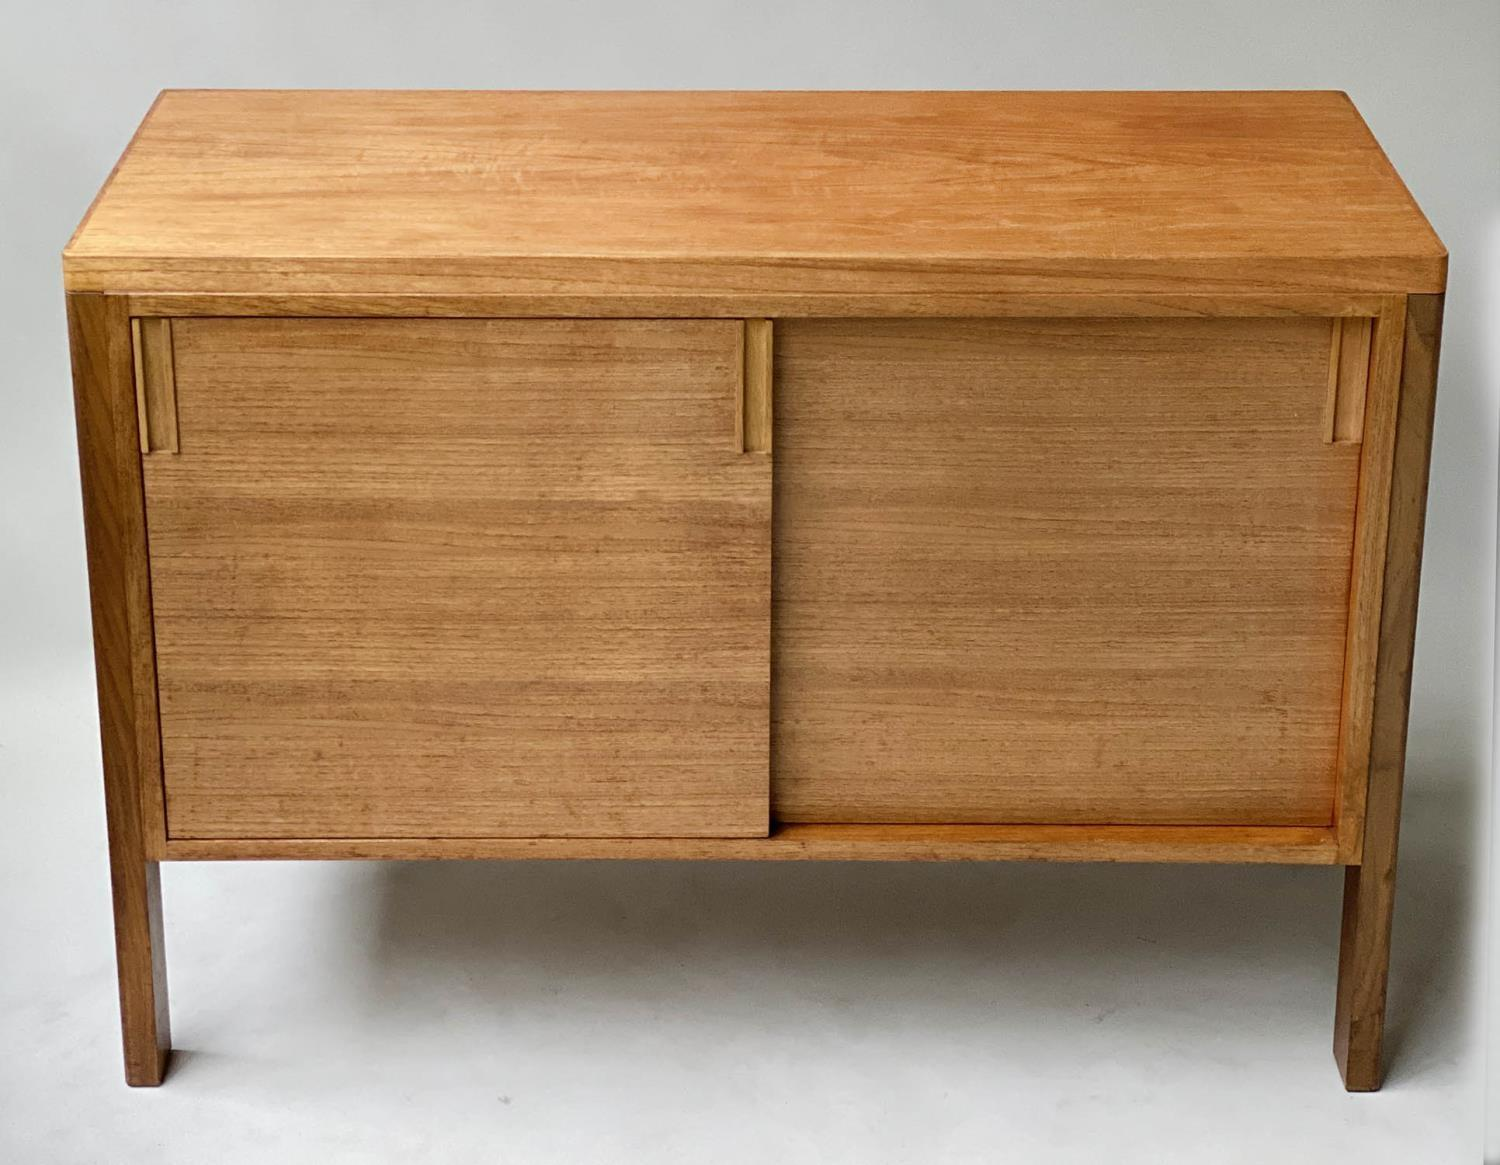 GORDON RUSSELL SIDEBOARD, 1960's walnut with two sliding doors enclosing shelves stamped Gordon